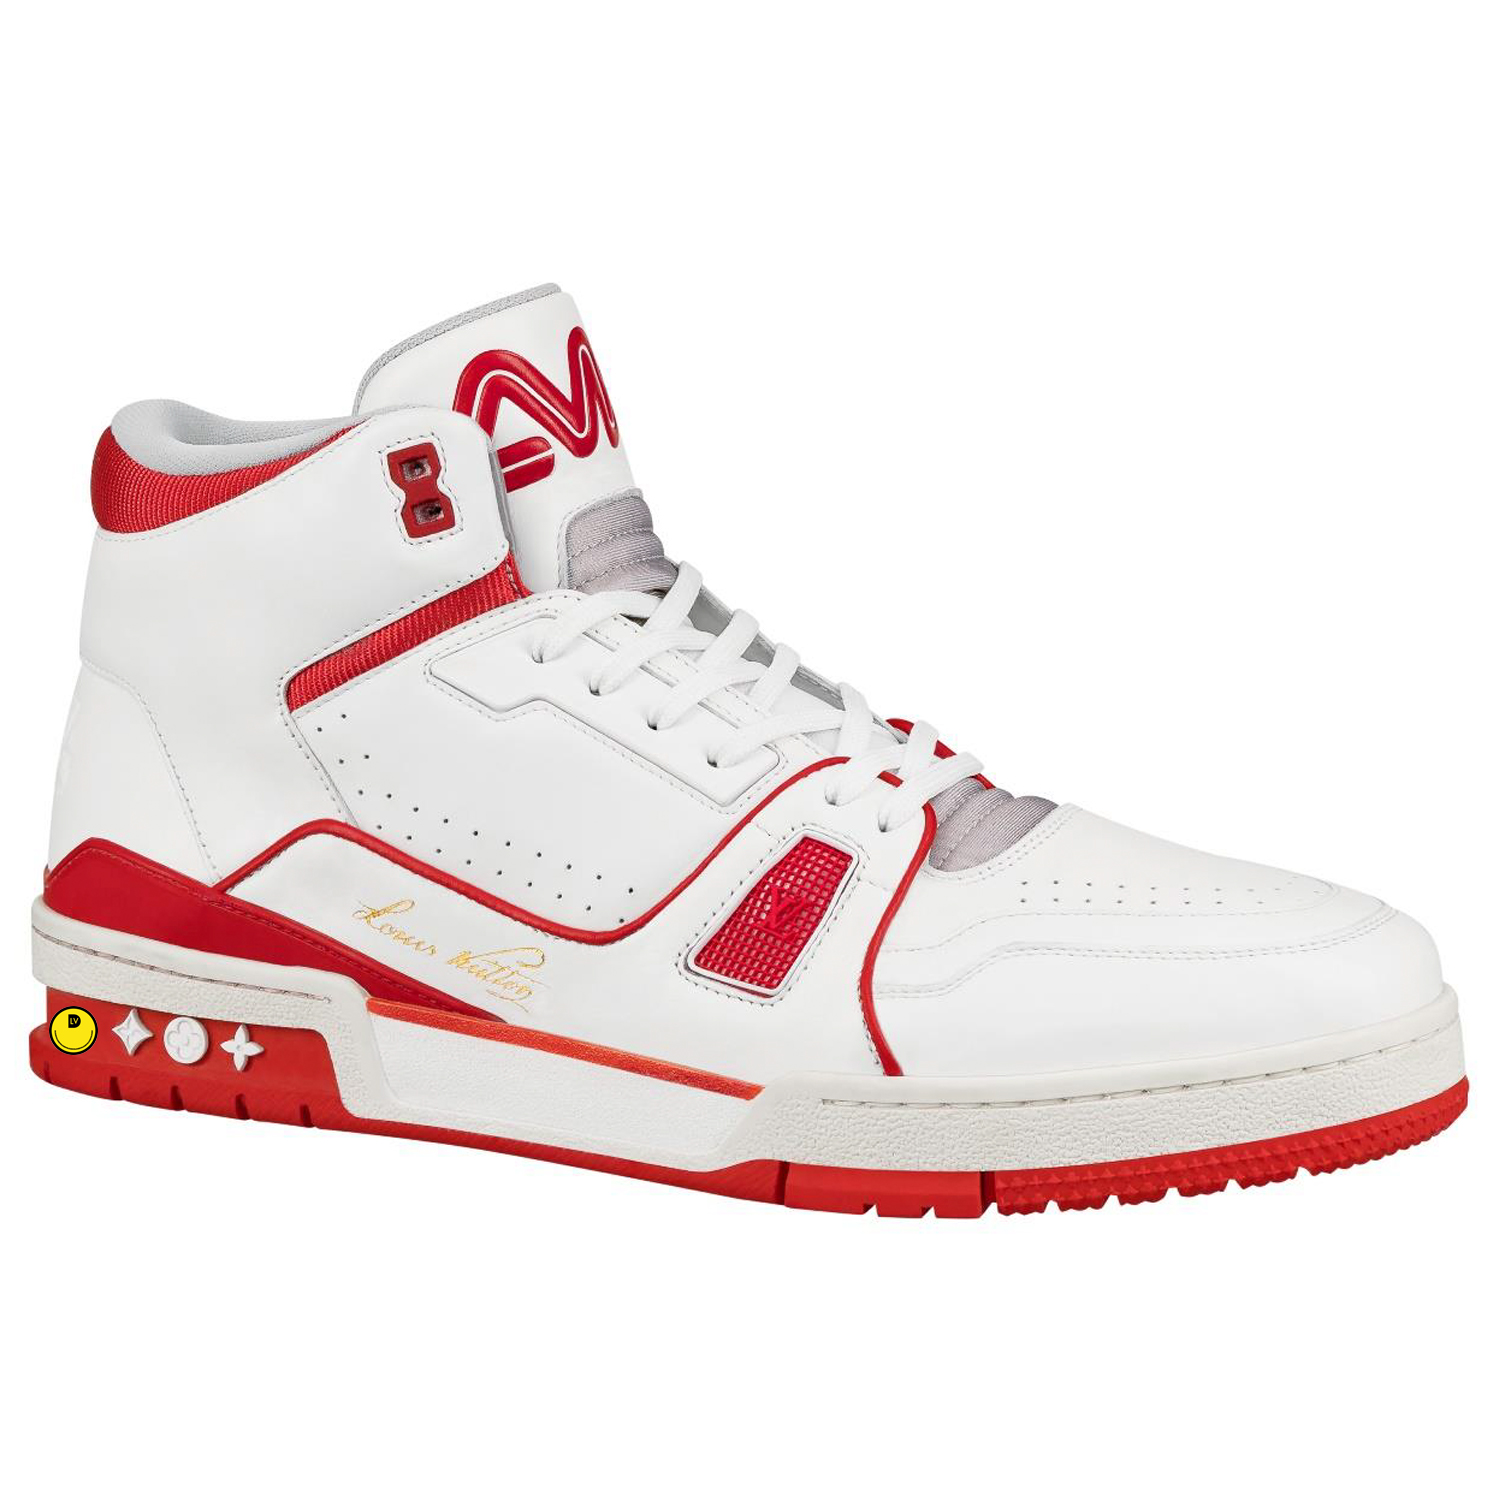 MID TOP SNEAKER - €990 $13001A54I3ROUGE